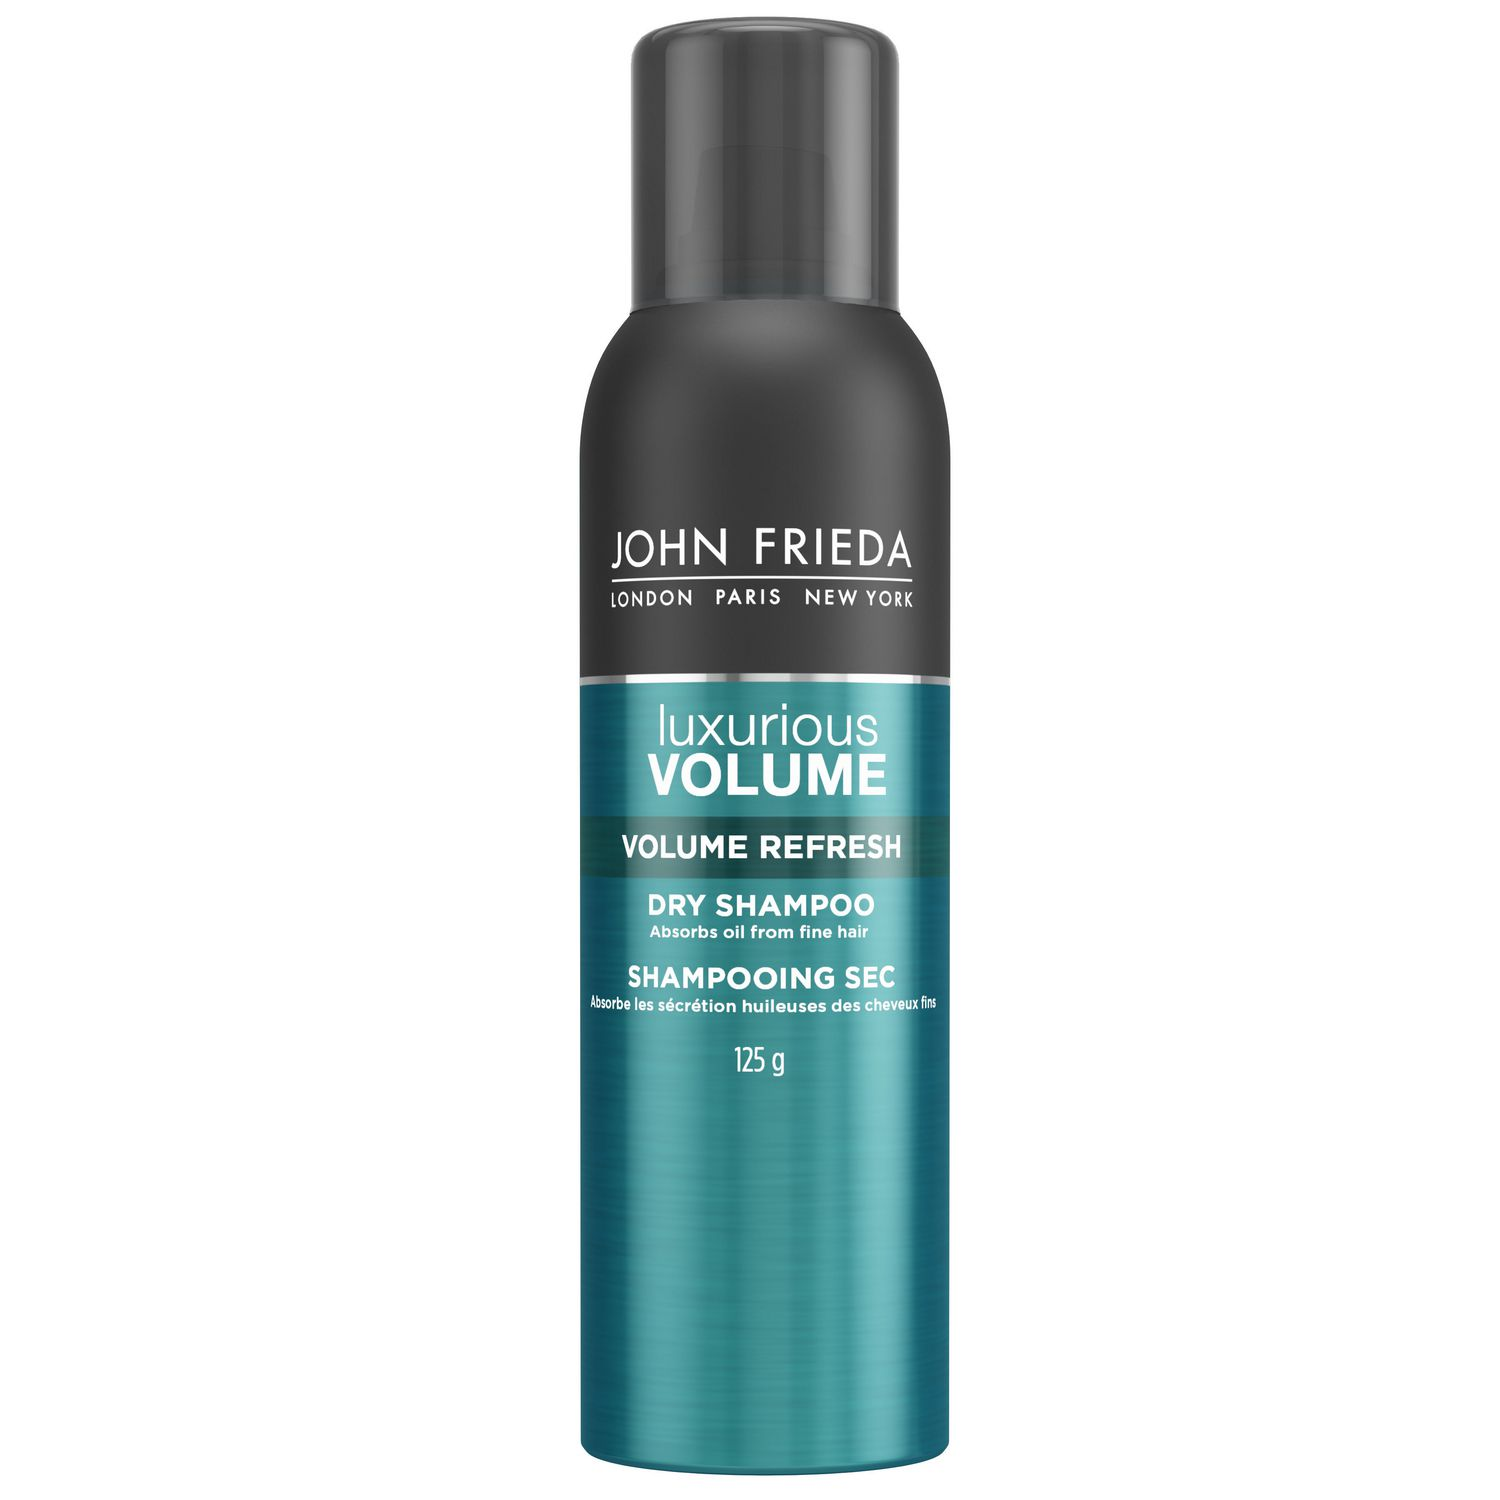 Image result for John Frieda Luxurious Volume Dry Shampoo